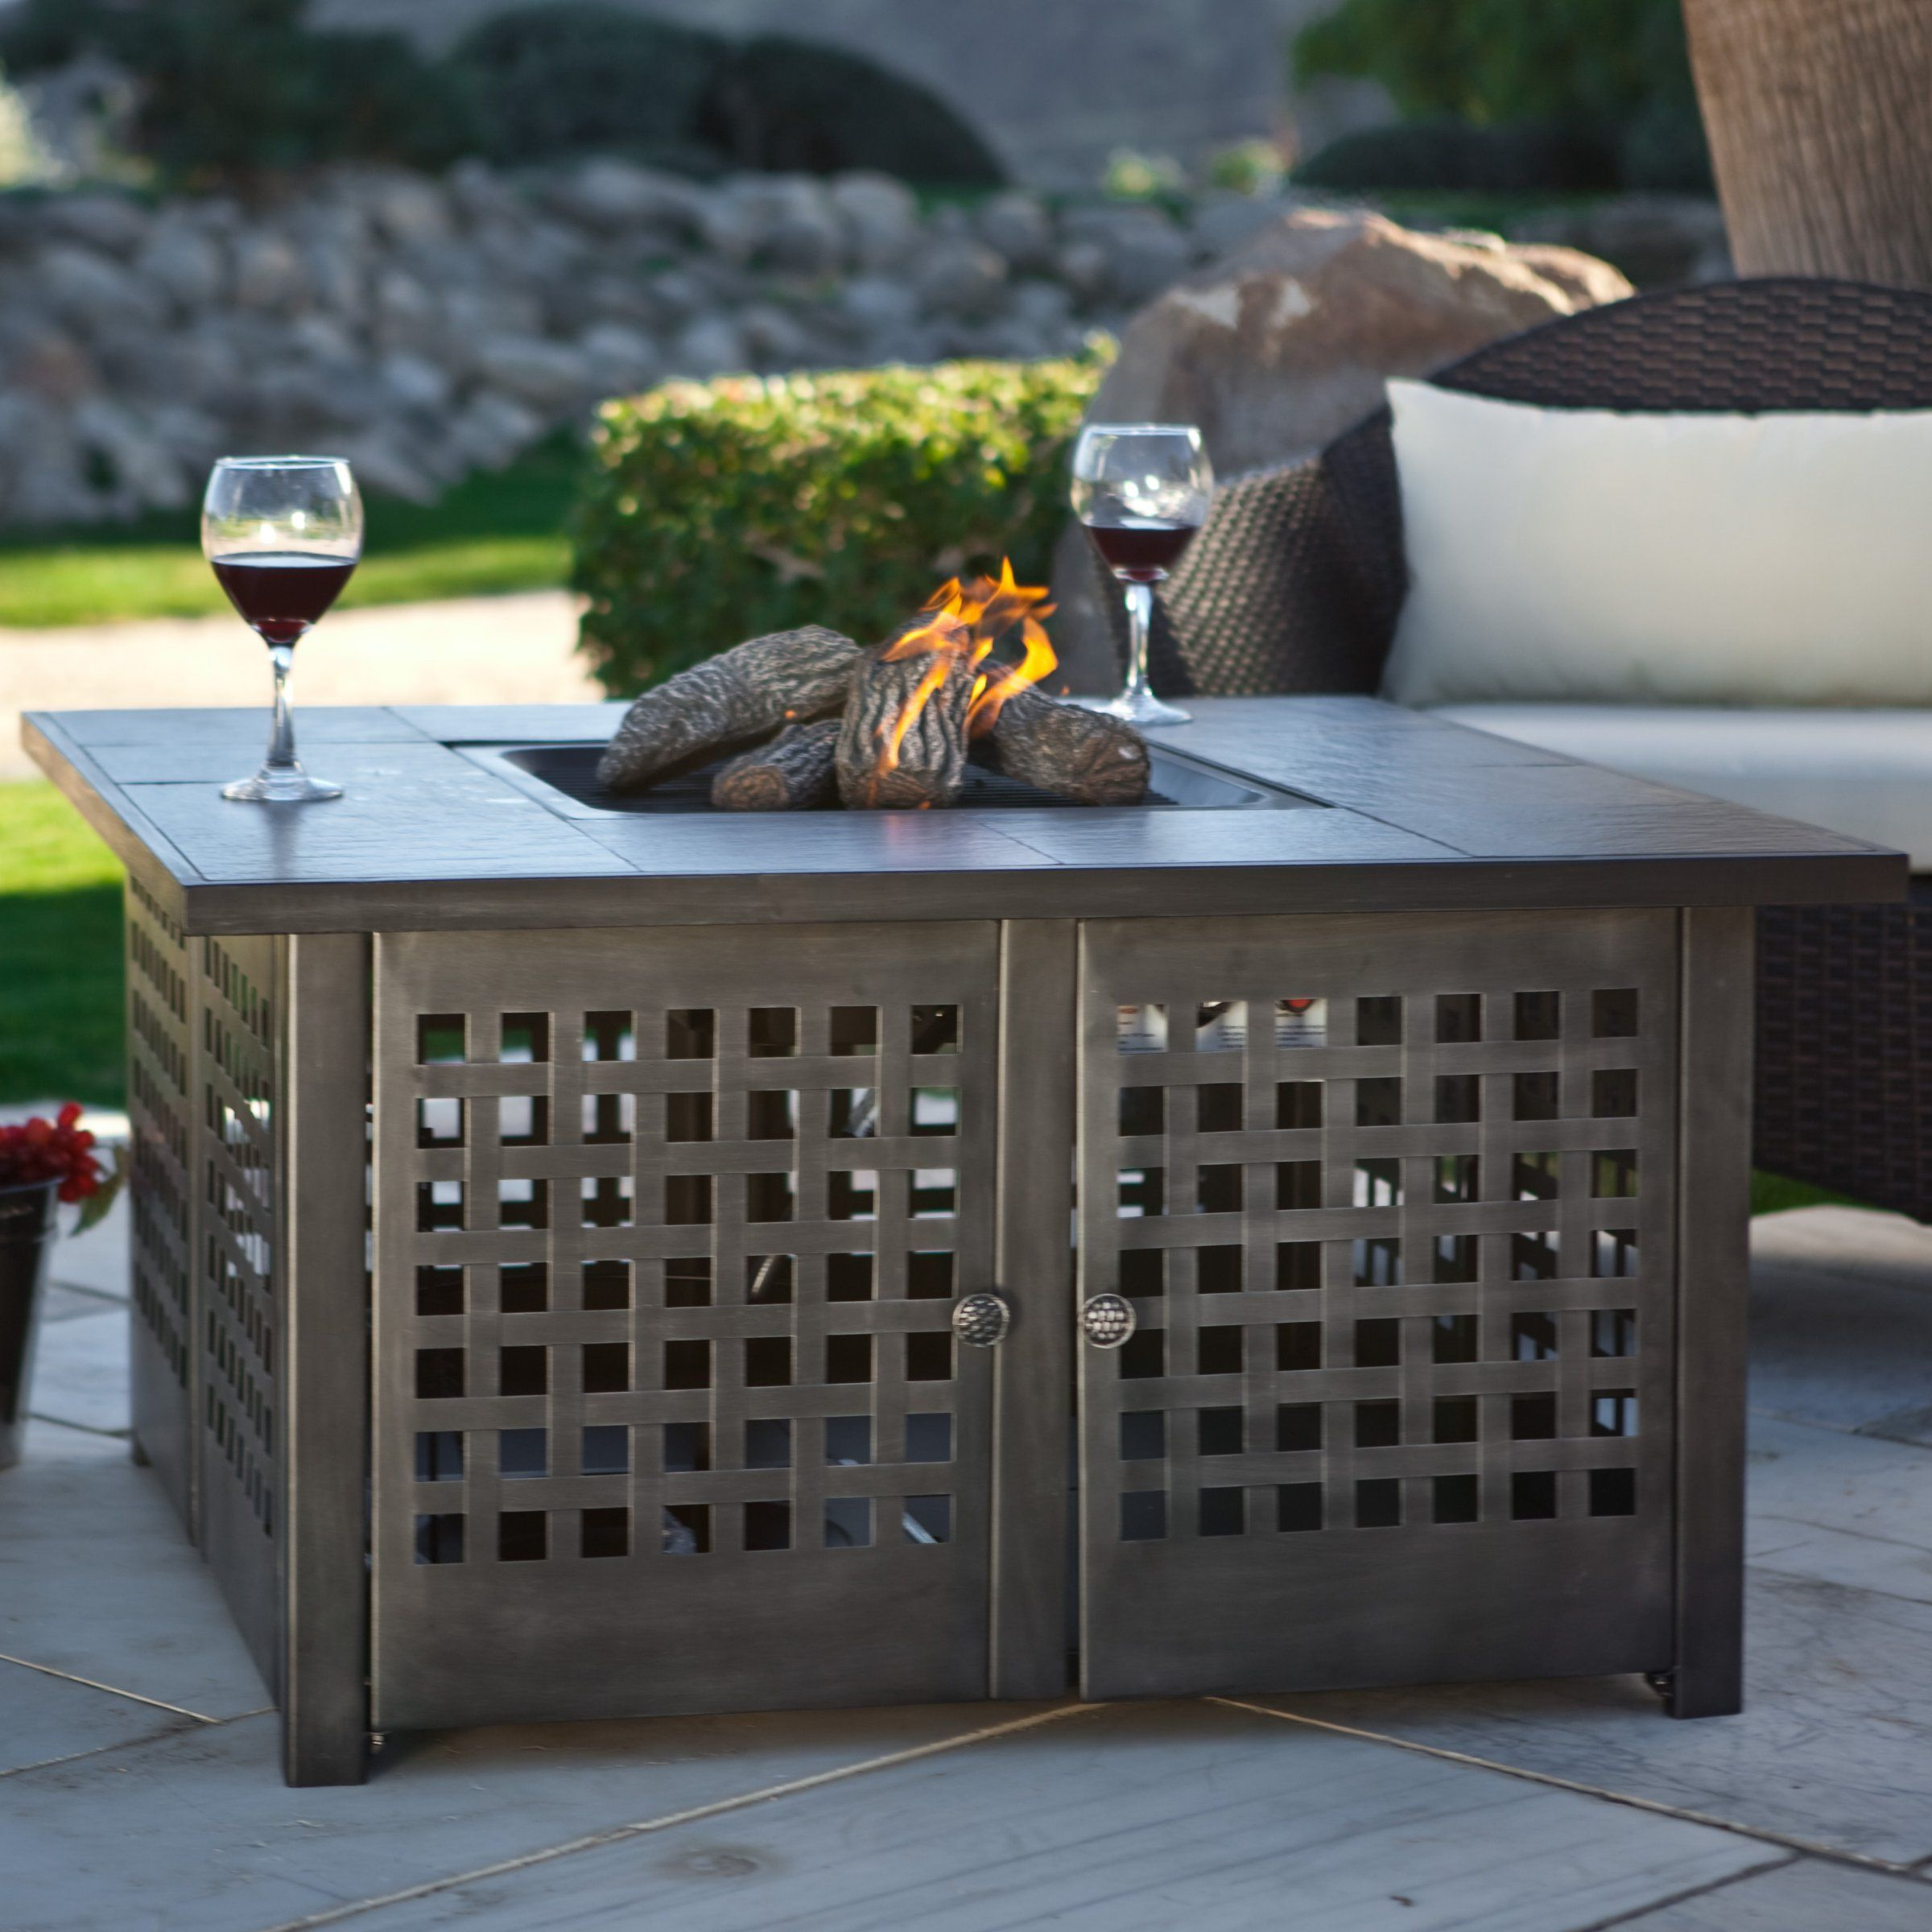 Uniflame grey slate top lp gas fire pit with free cover pool and